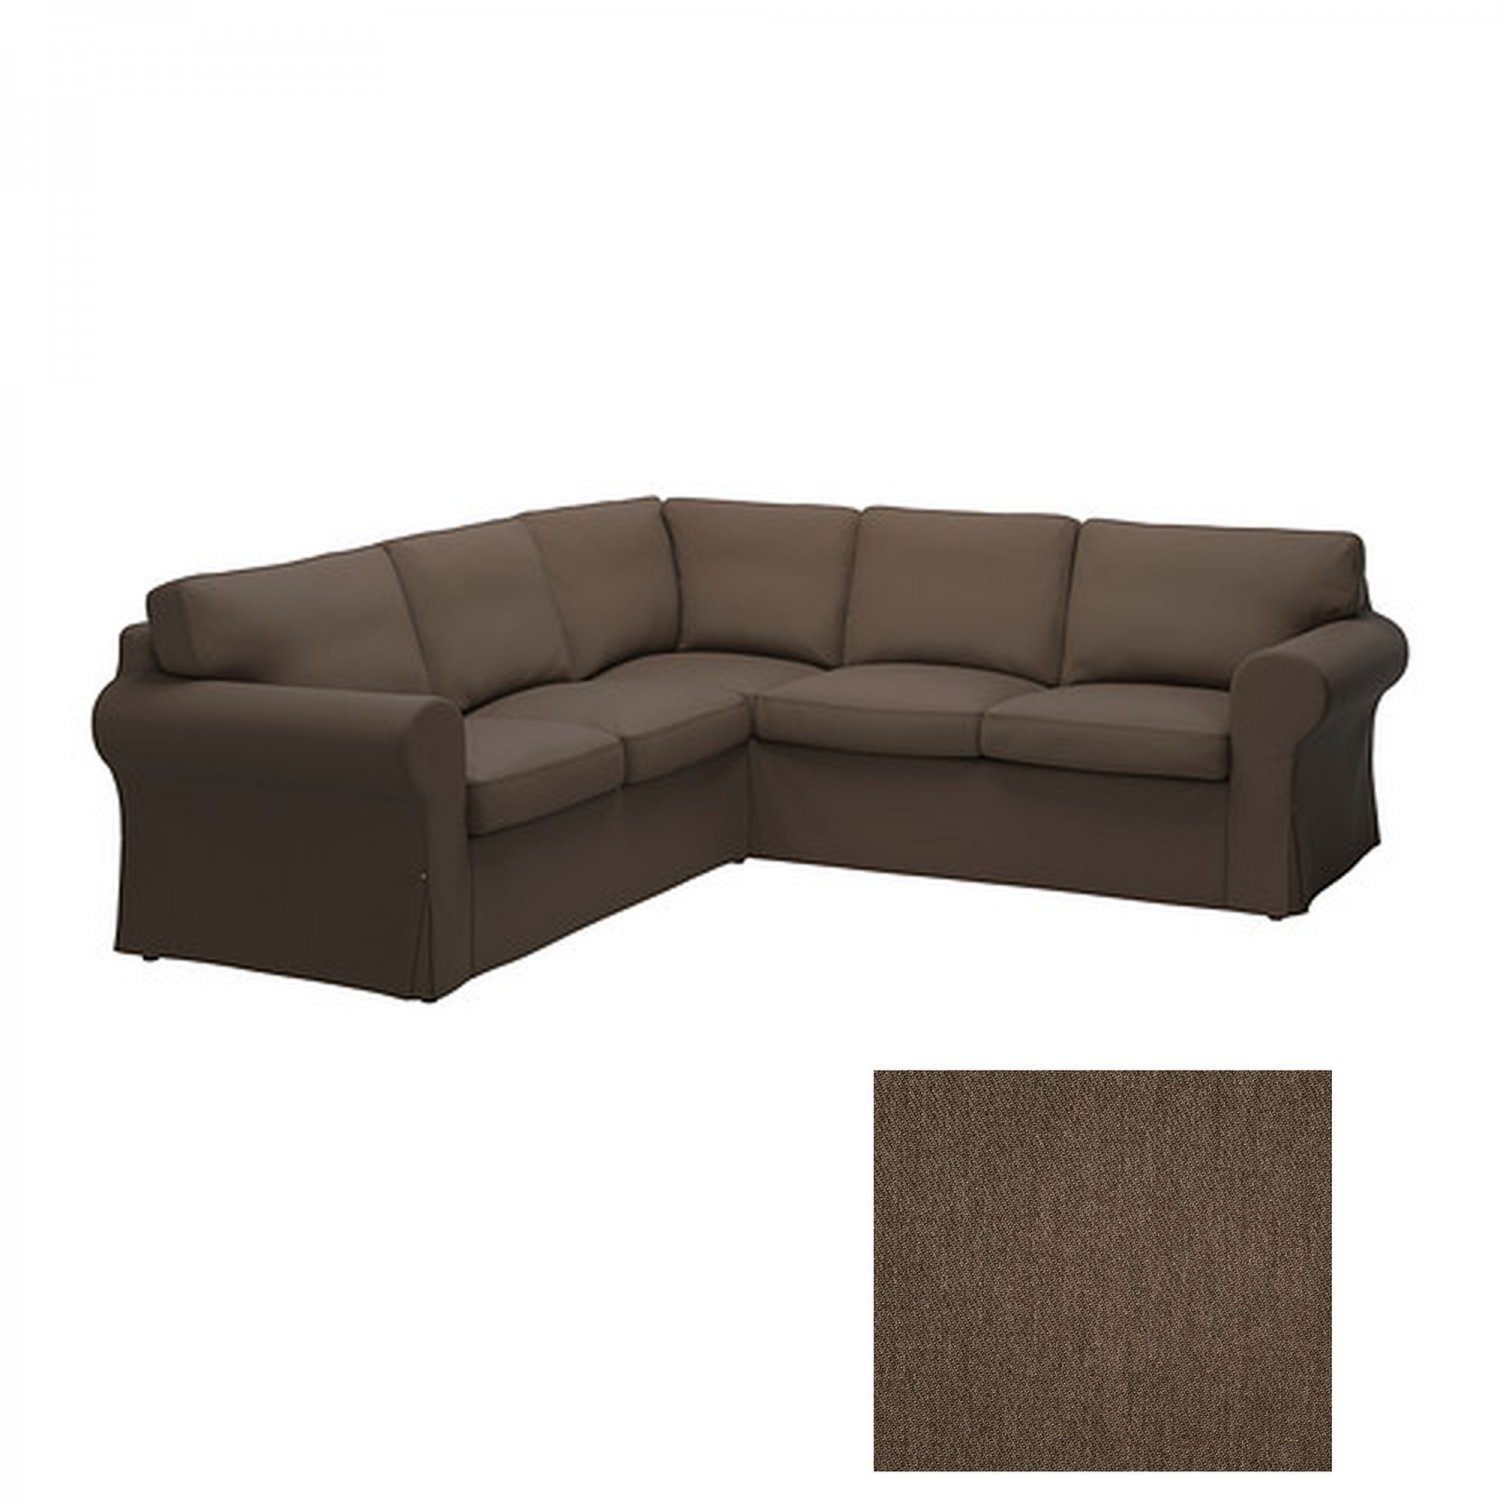 Ikea Sofa Cover Ikea Ektorp 2 432 Corner Sofa Cover Slipcover Jonsboda Brown